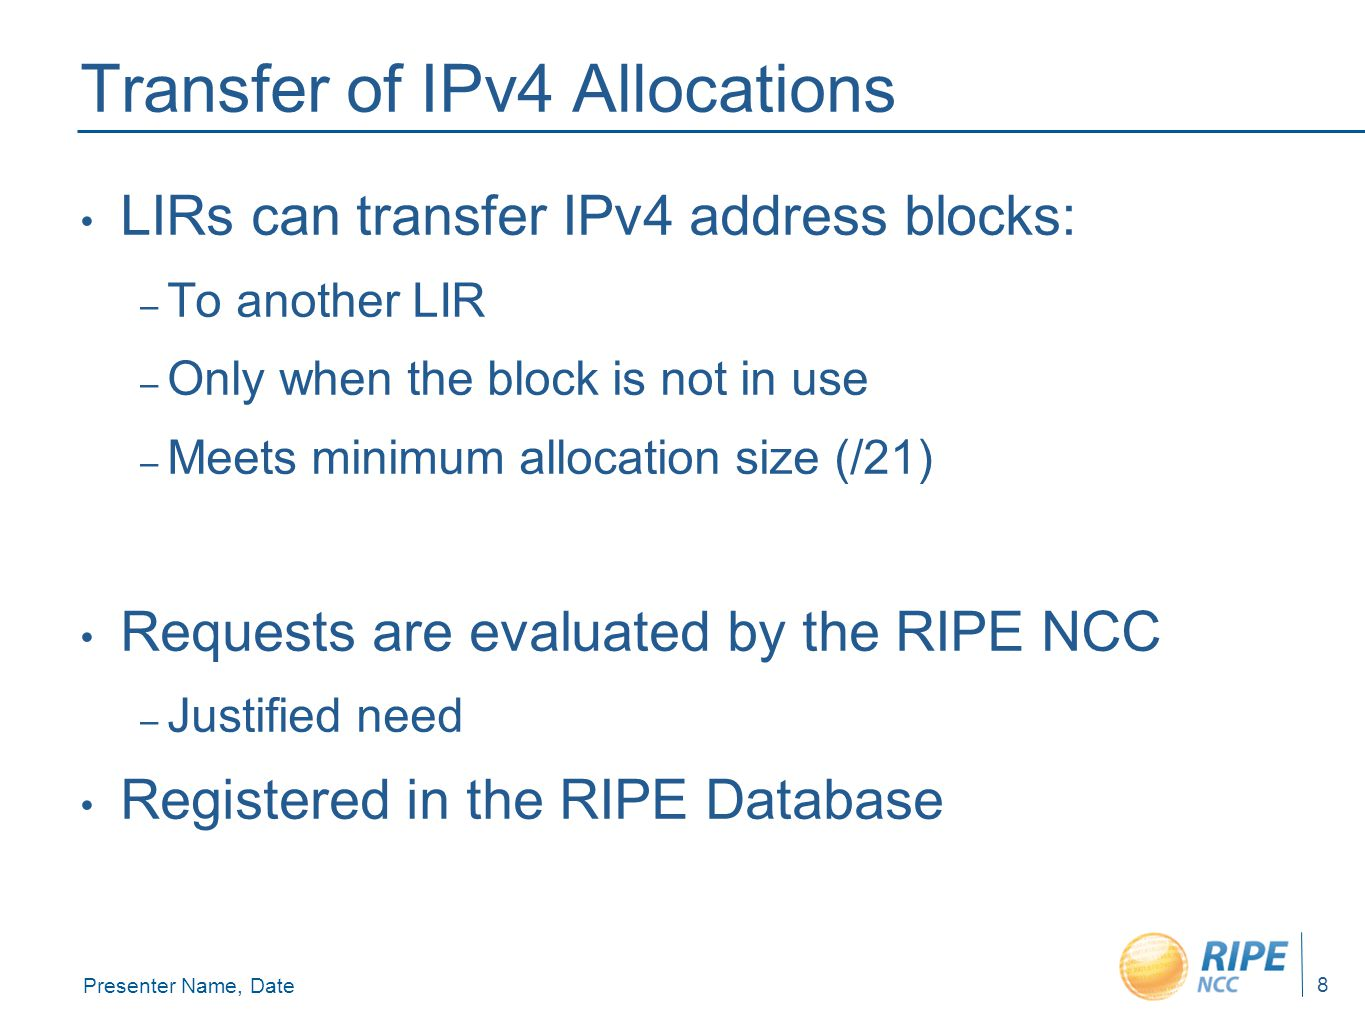 Presenter Name, Date 8 Transfer of IPv4 Allocations LIRs can transfer IPv4 address blocks: – To another LIR – Only when the block is not in use – Meets minimum allocation size (/21) Requests are evaluated by the RIPE NCC – Justified need Registered in the RIPE Database